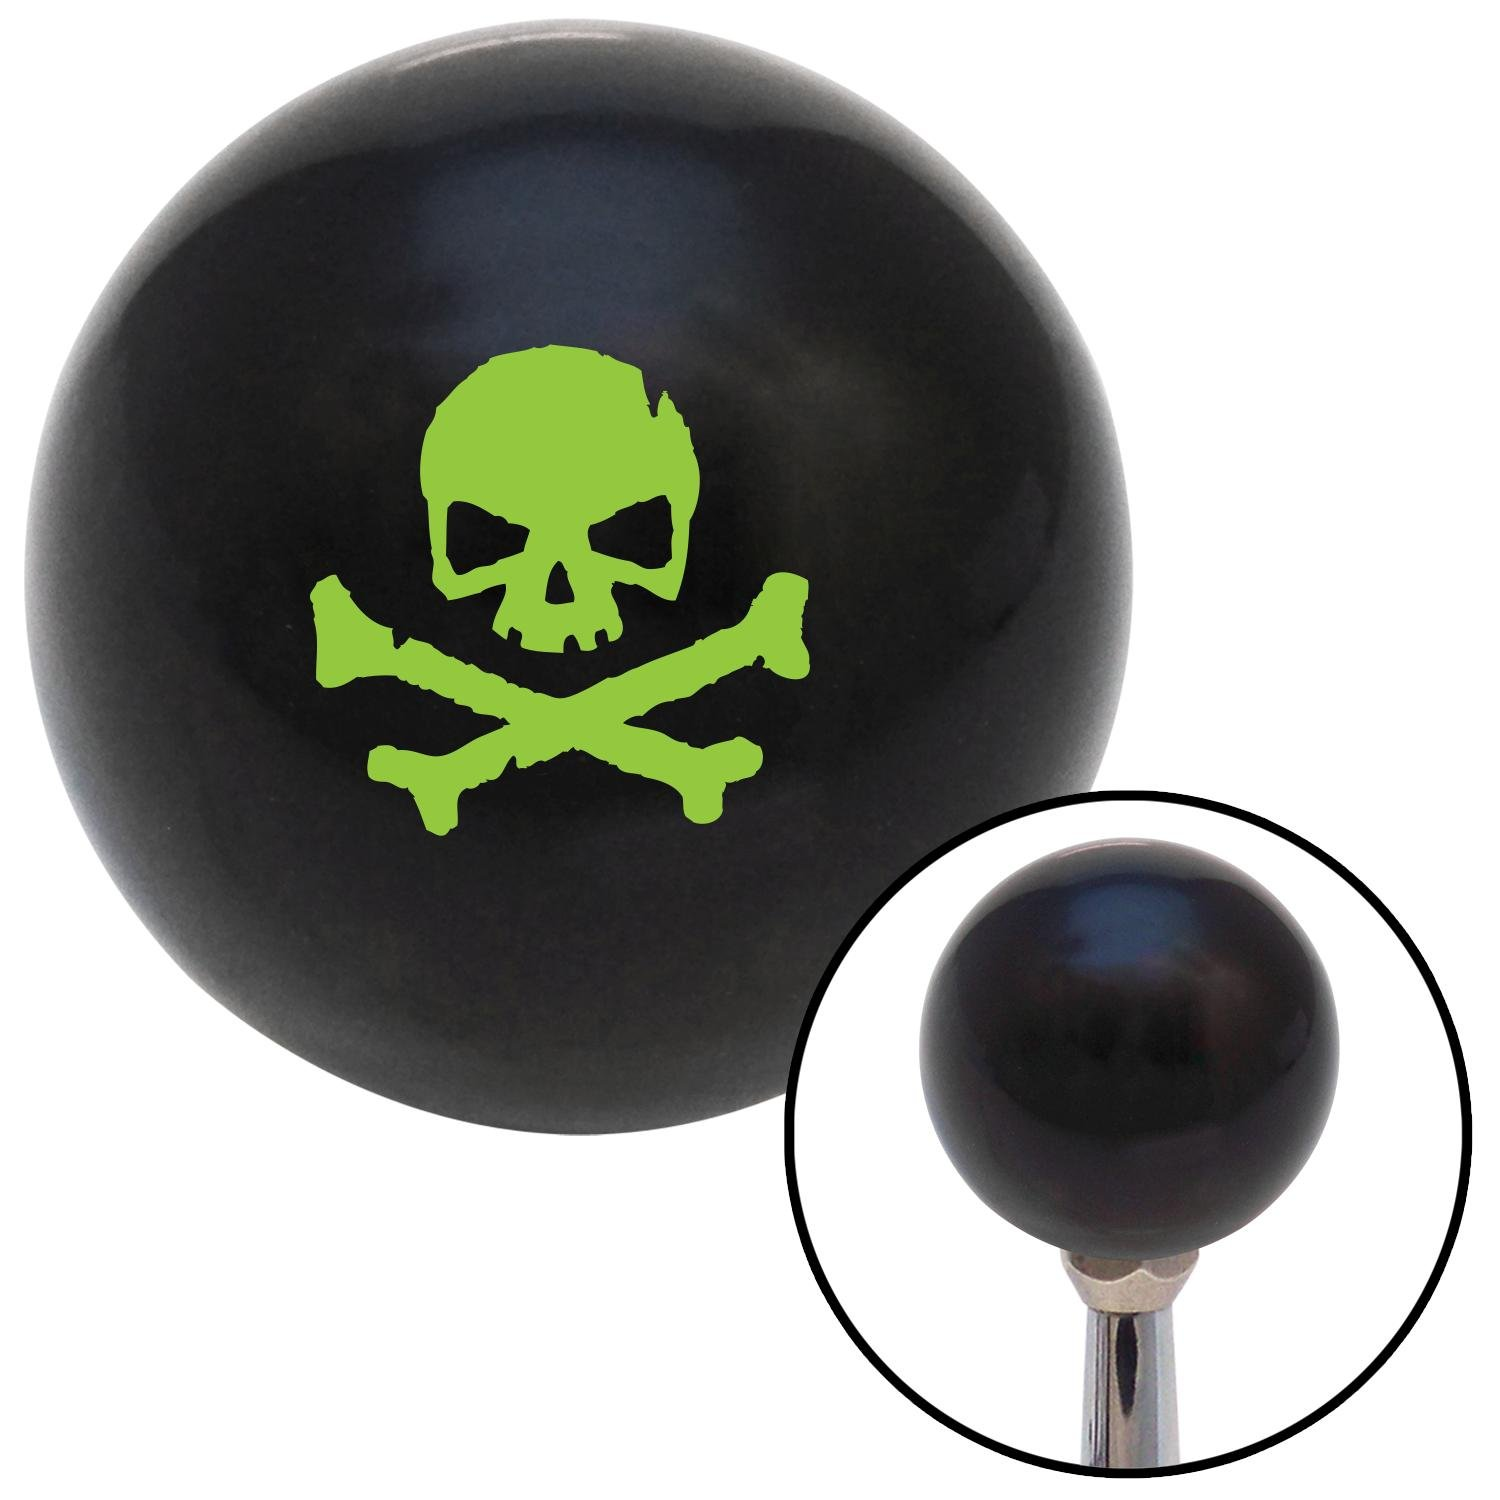 Green Skull 1 American Shifter 109354 Black Shift Knob with M16 x 1.5 Insert